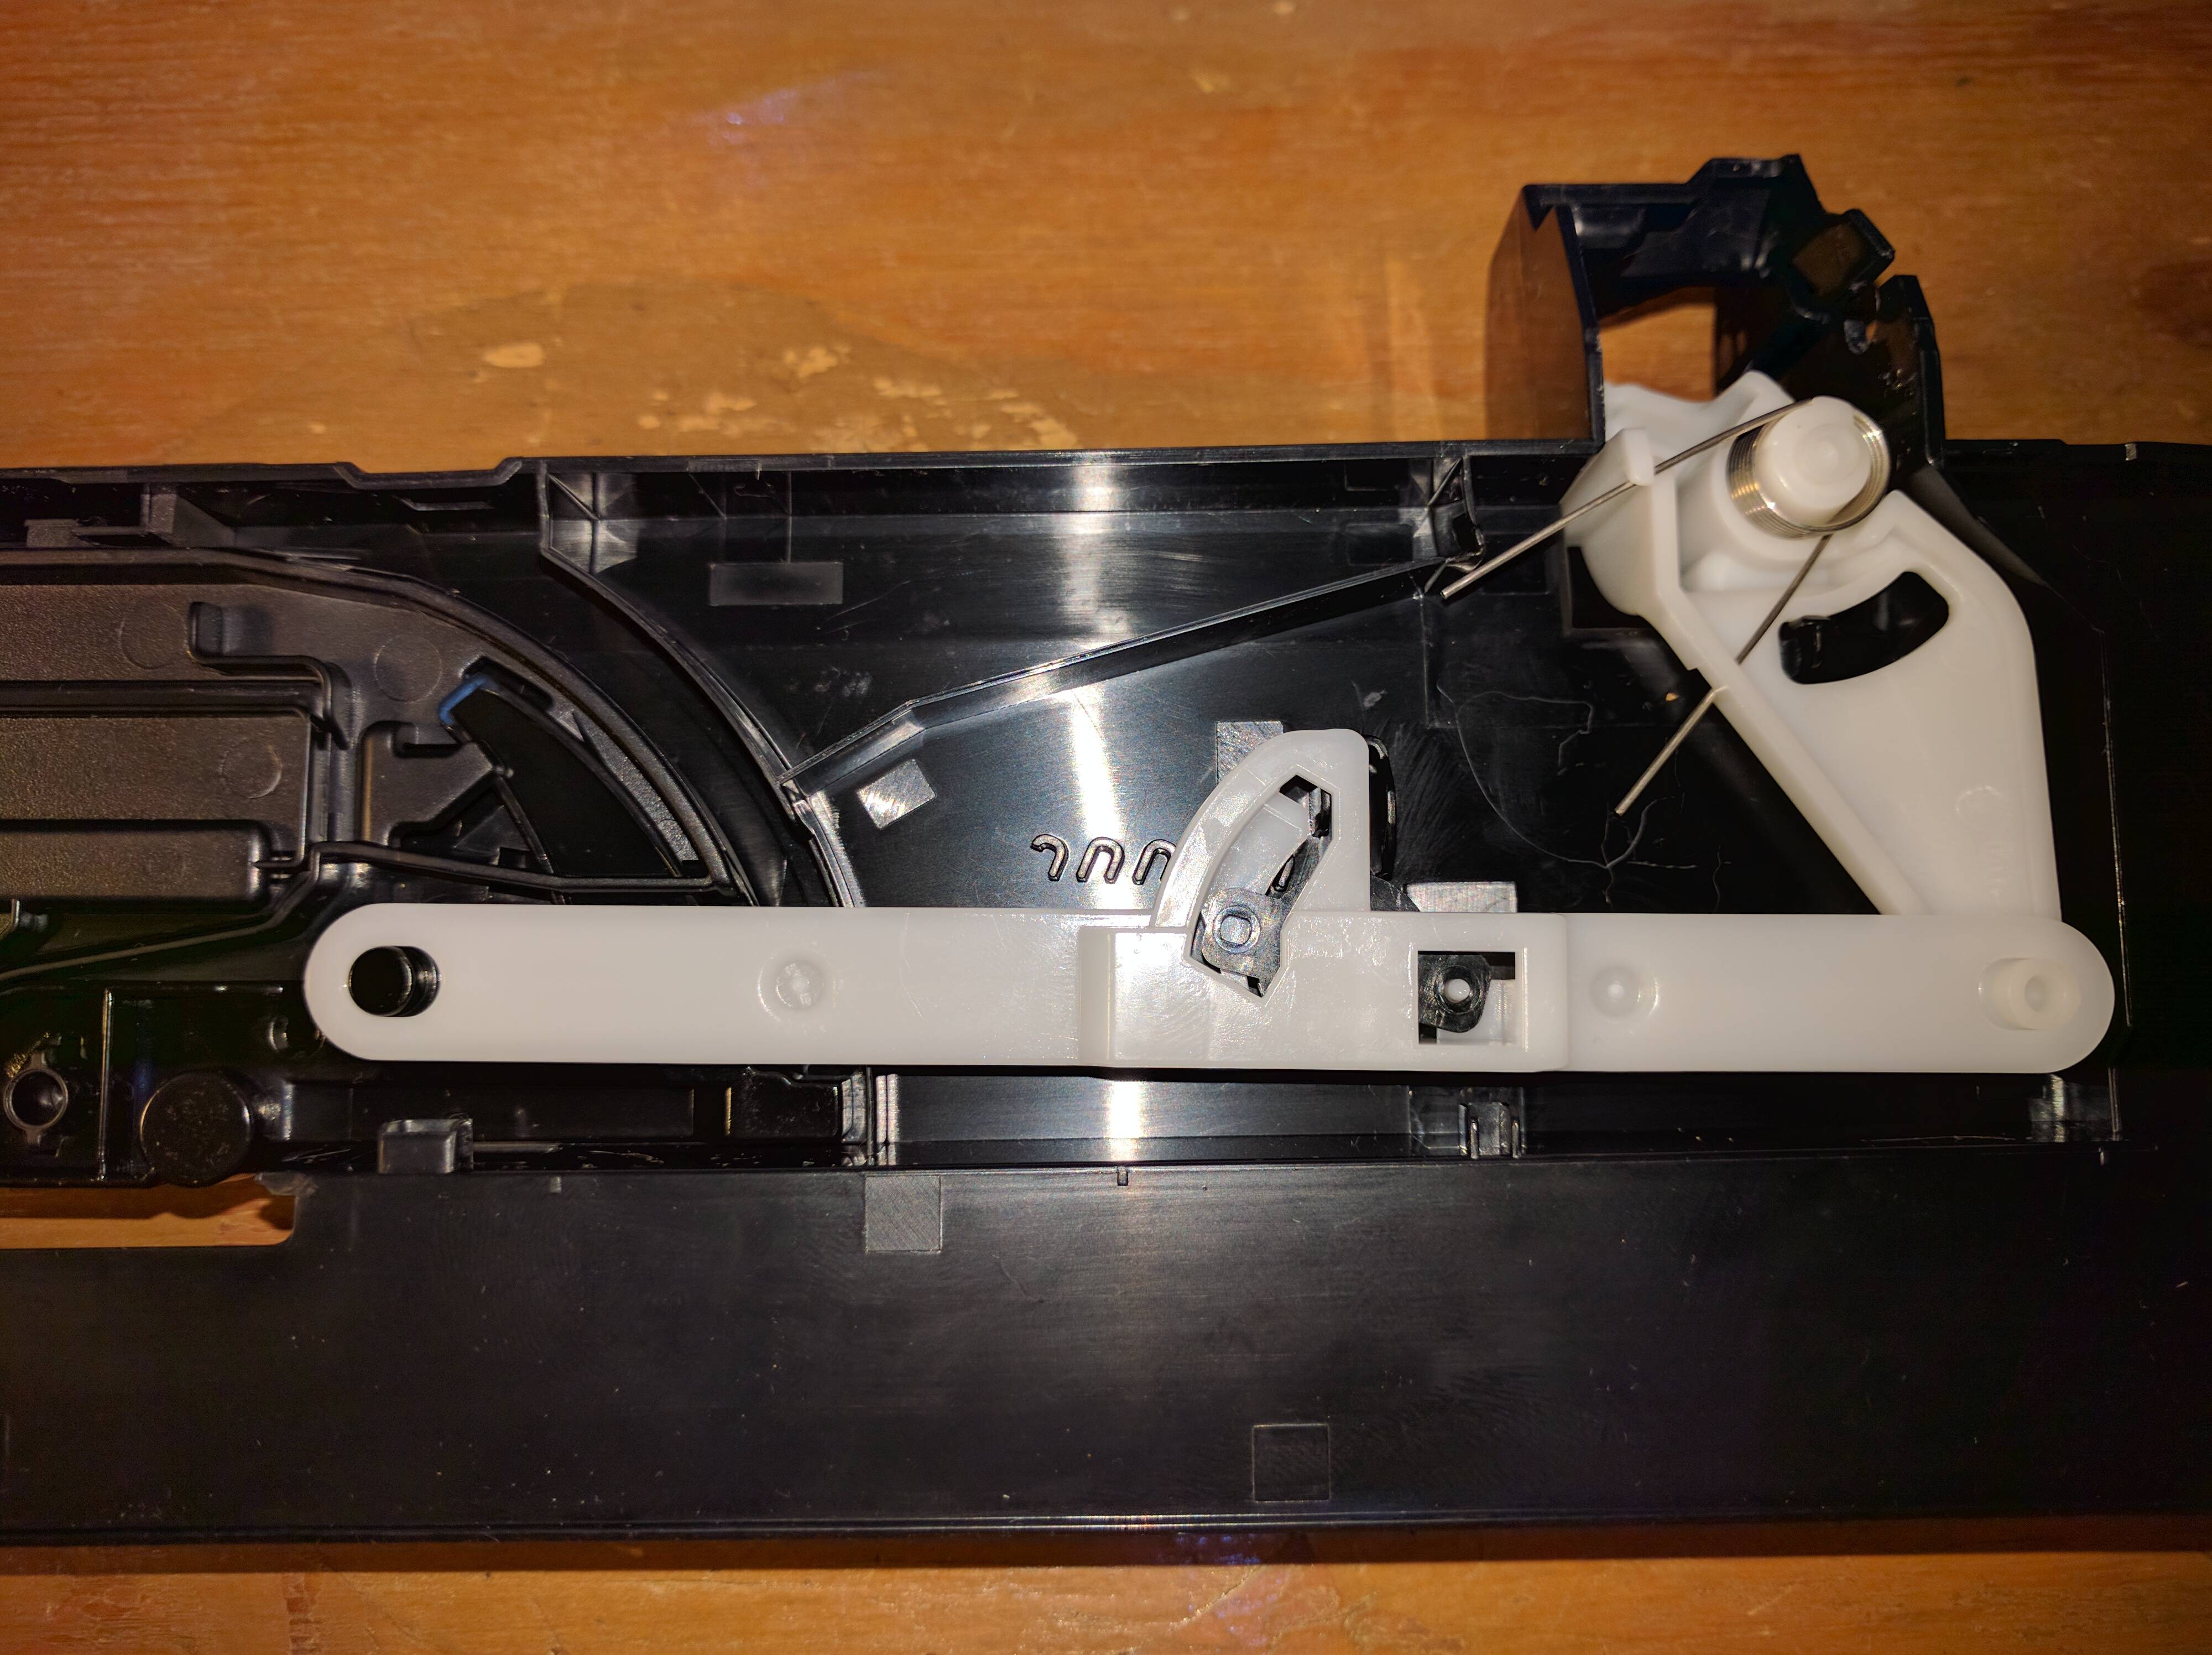 How to remove output tray (front door) on MX922? - Canon ...